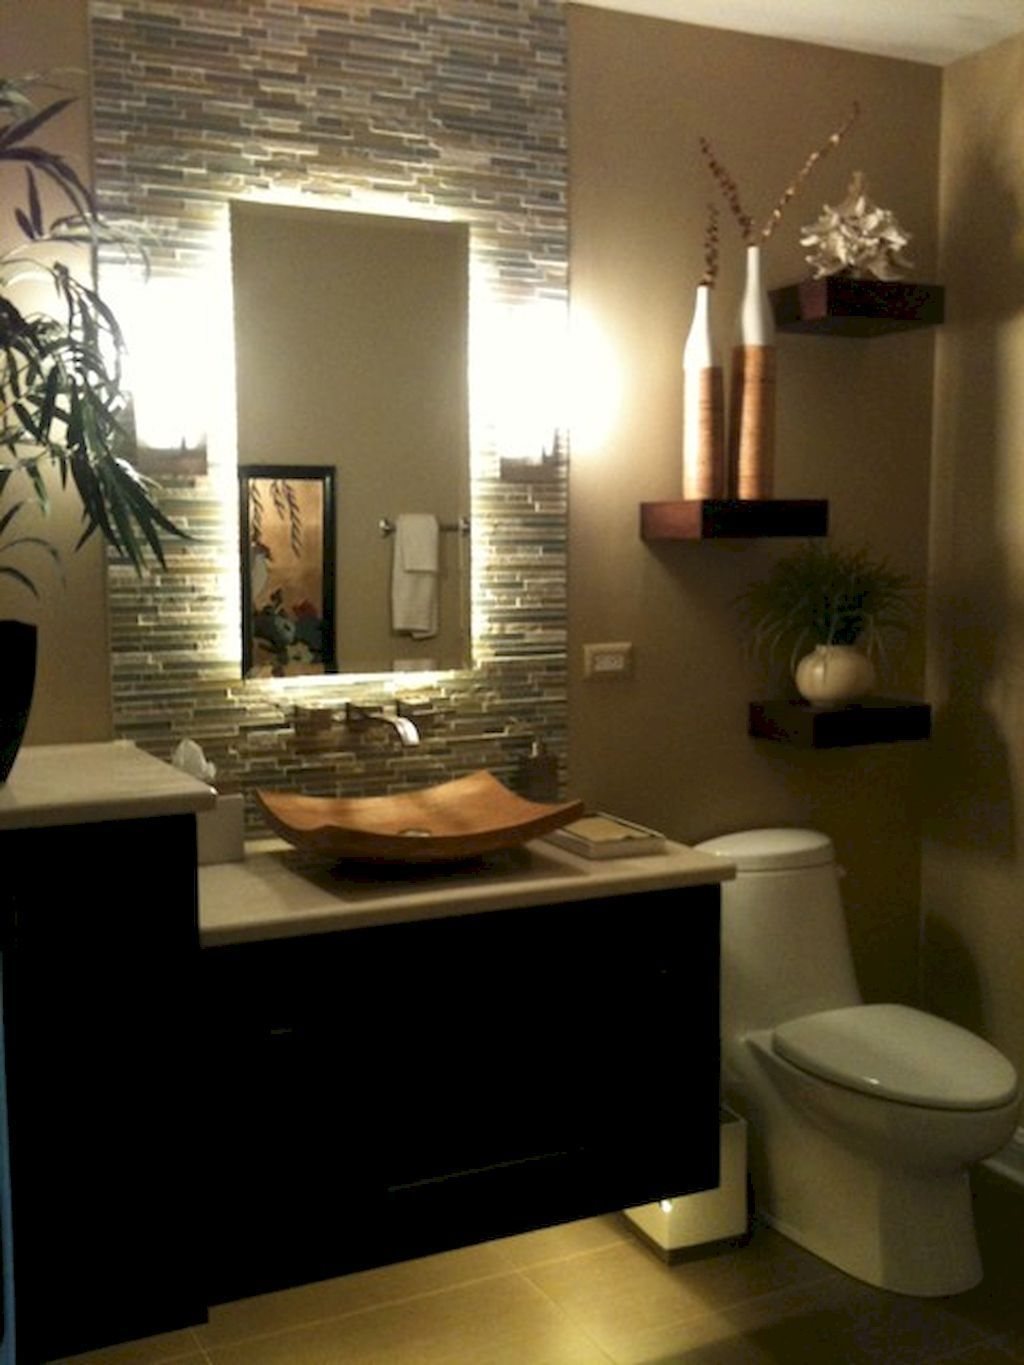 35 Most Efficient Small Powder Room Design Ideas 24  Bathroom Tropical Bathroom Spa Lighting